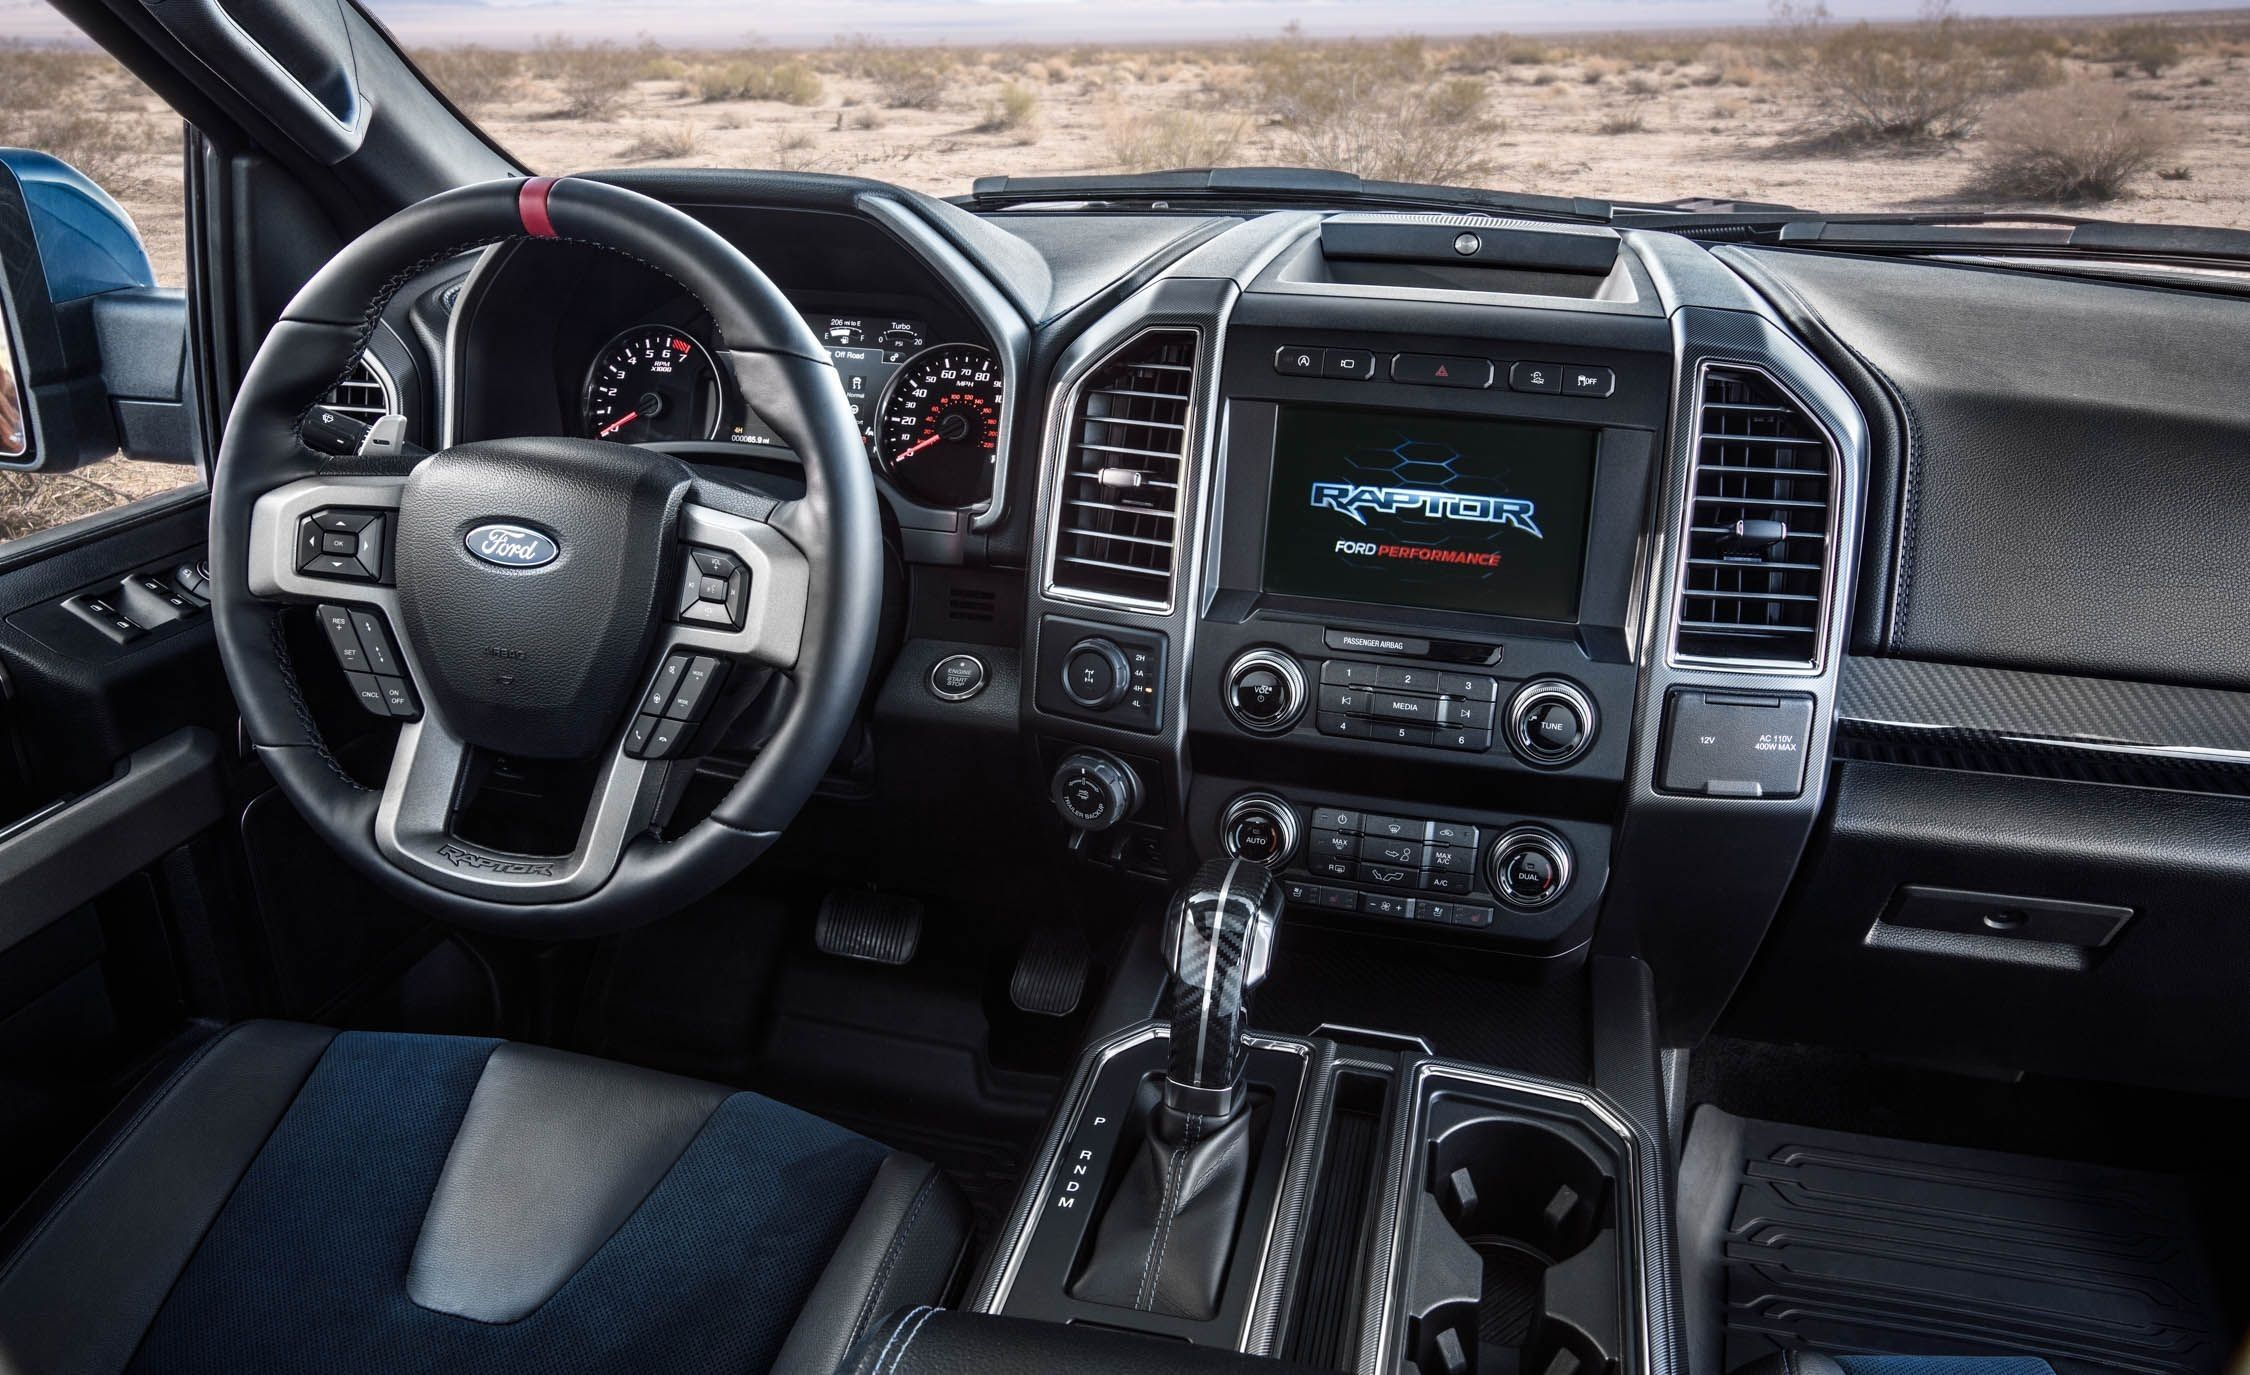 2019 Ford F150 Raptor Price With Images Ford Raptor Ford F150